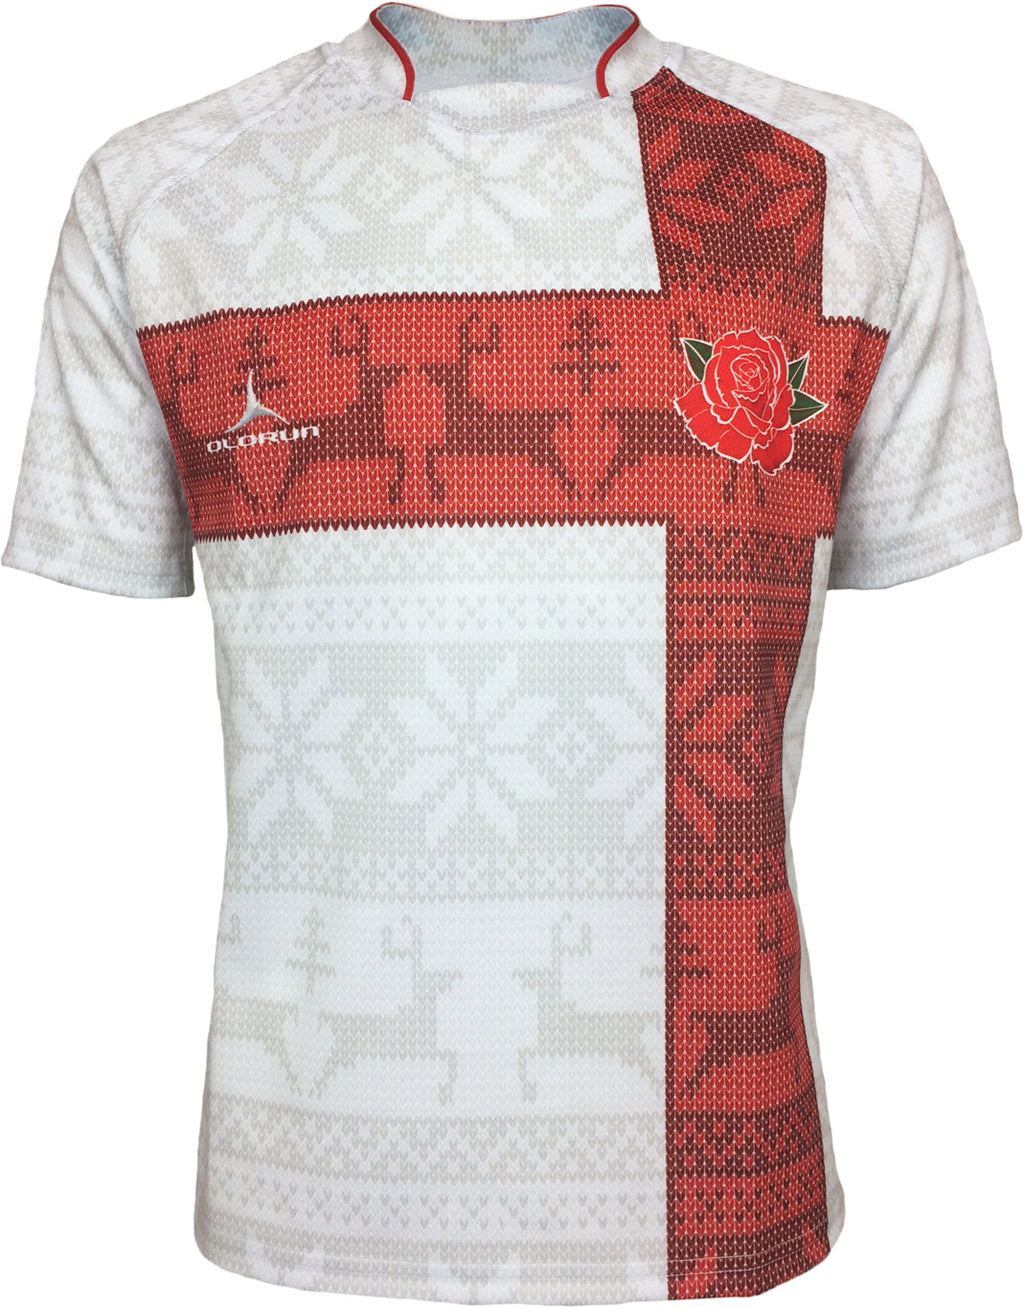 Christmas Rugby Shirts – Olorun Sports